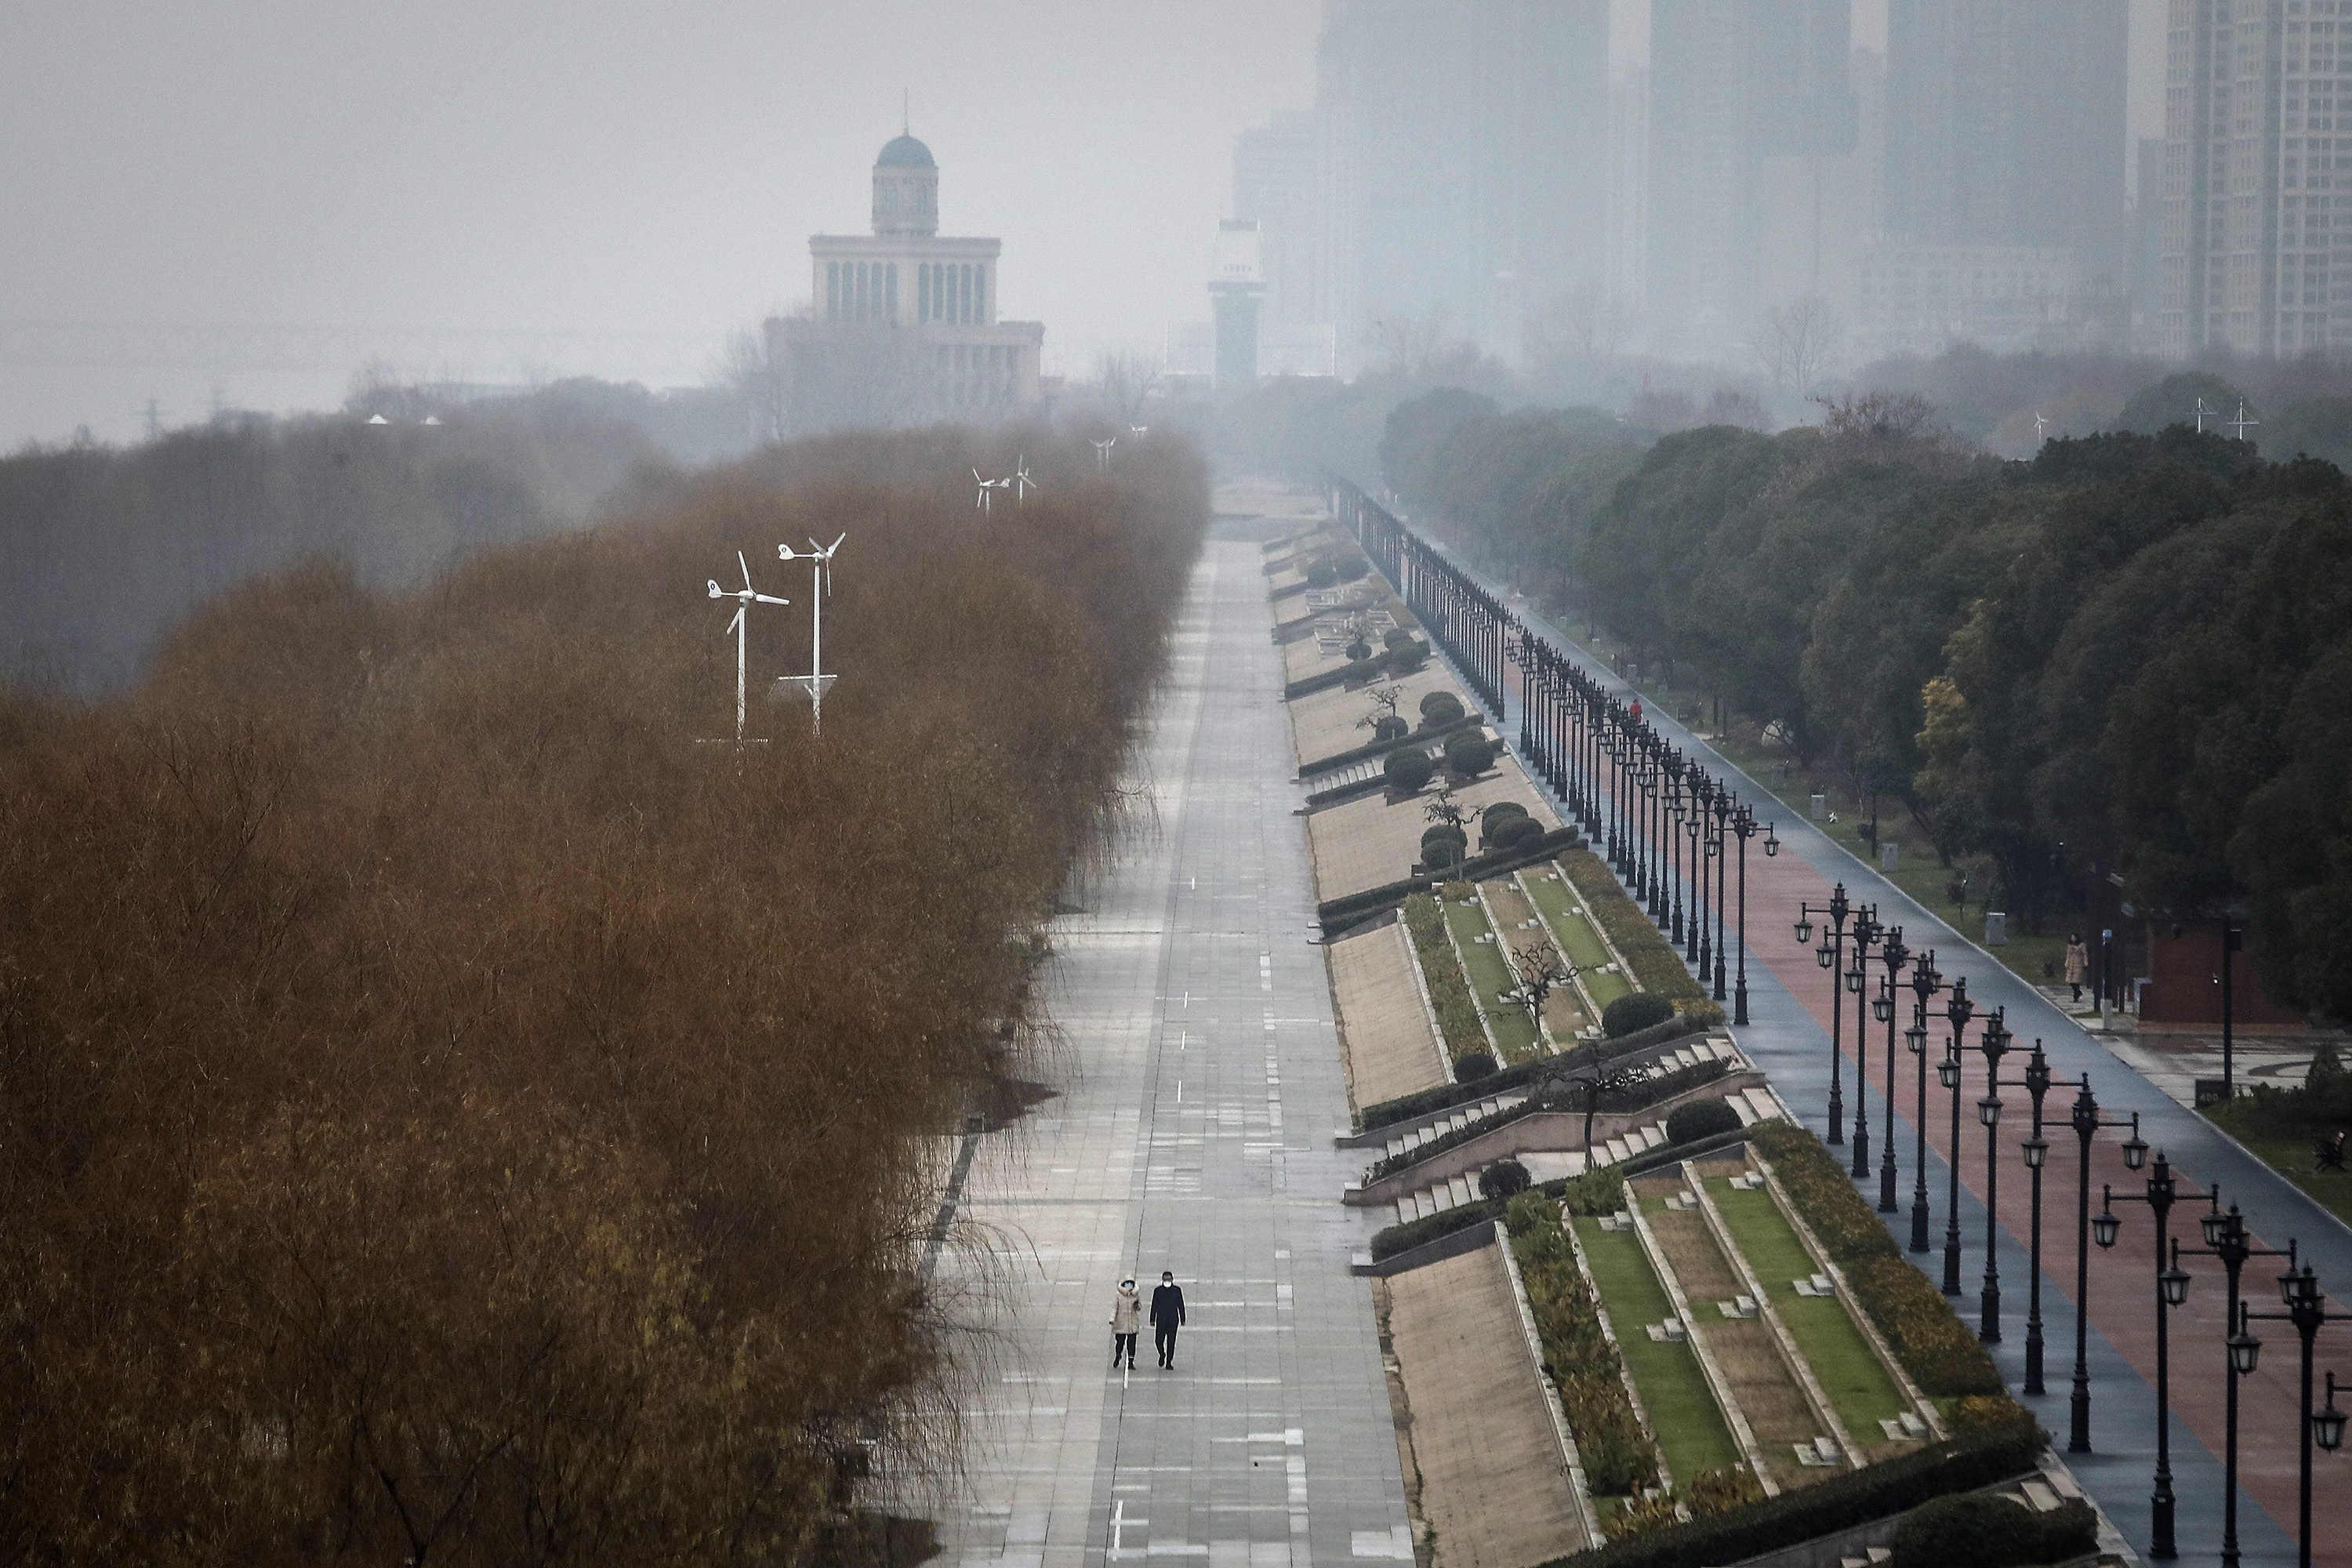 WUHAN, CHINA - JANUARY 27: (CHINA-OUT) Two residents walk in an empty Jiangtan park on January 27, 2020 in Wuhan, China. As the death toll from the coronavirus reaches 80 in China with over 2700 confirmed cases, the city remains on lockdown for a fourth day. (Photo by Getty Images)